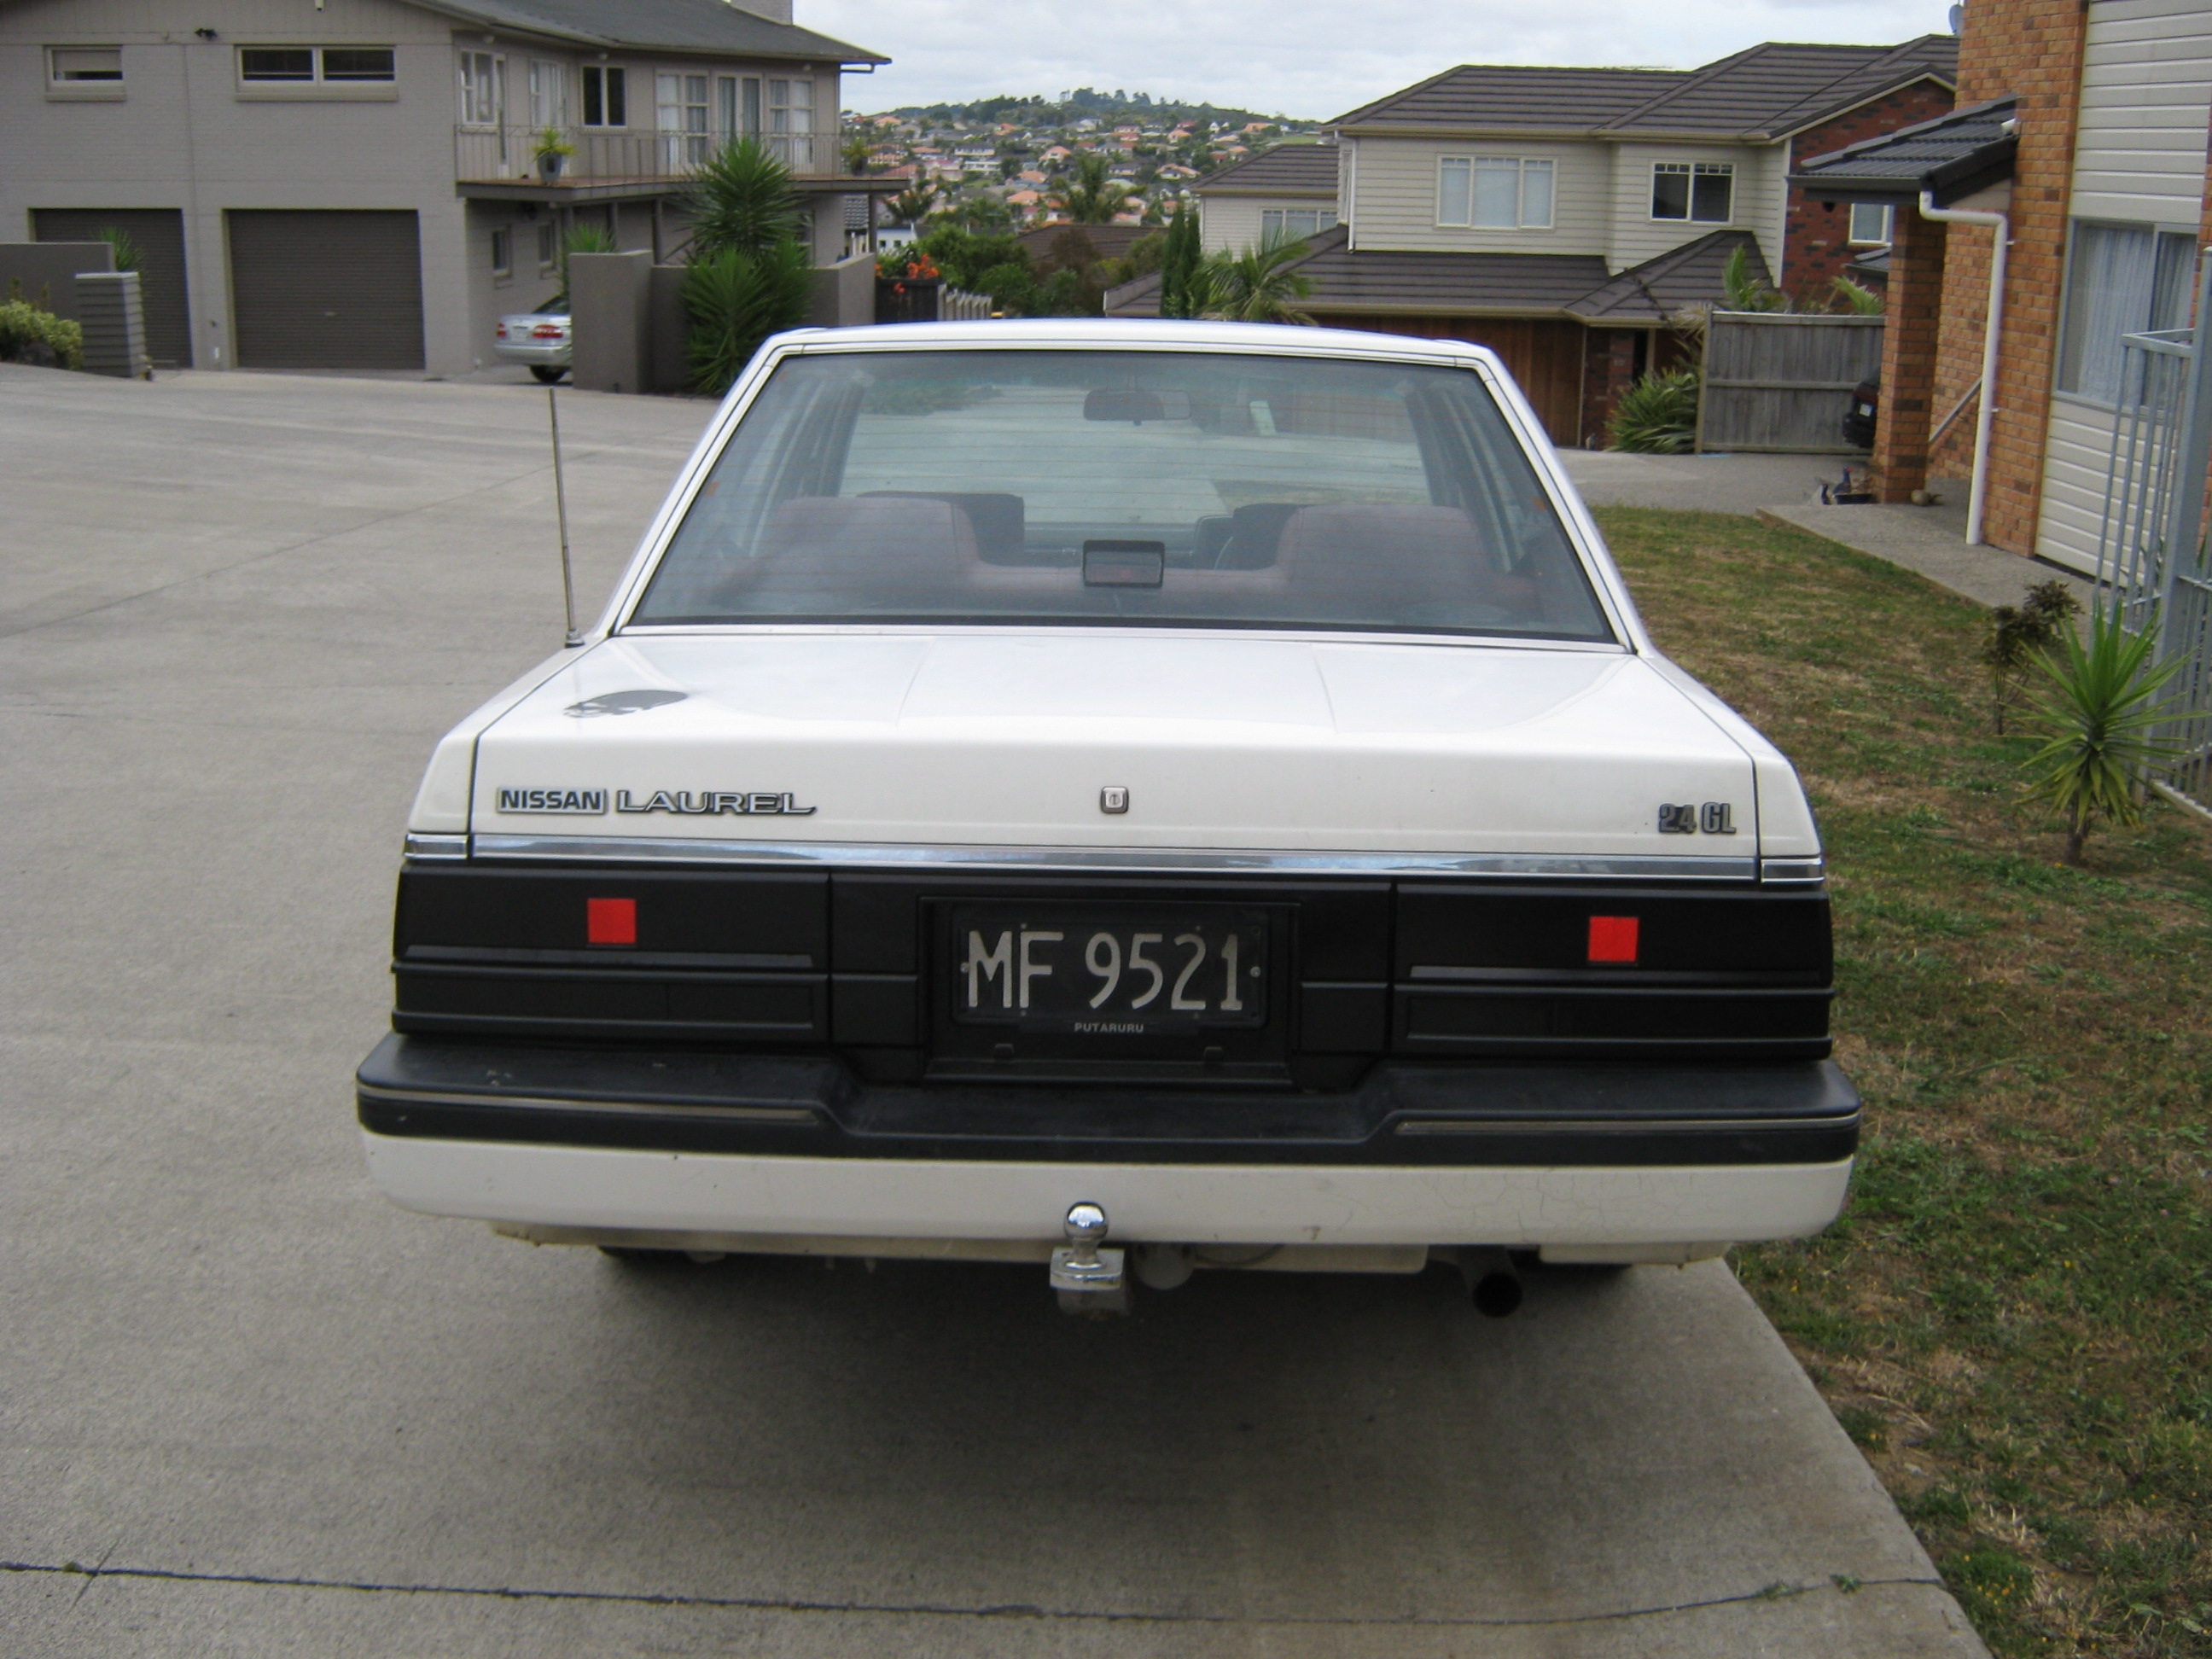 Delta_richo 1985 Nissan Laurel 14143537